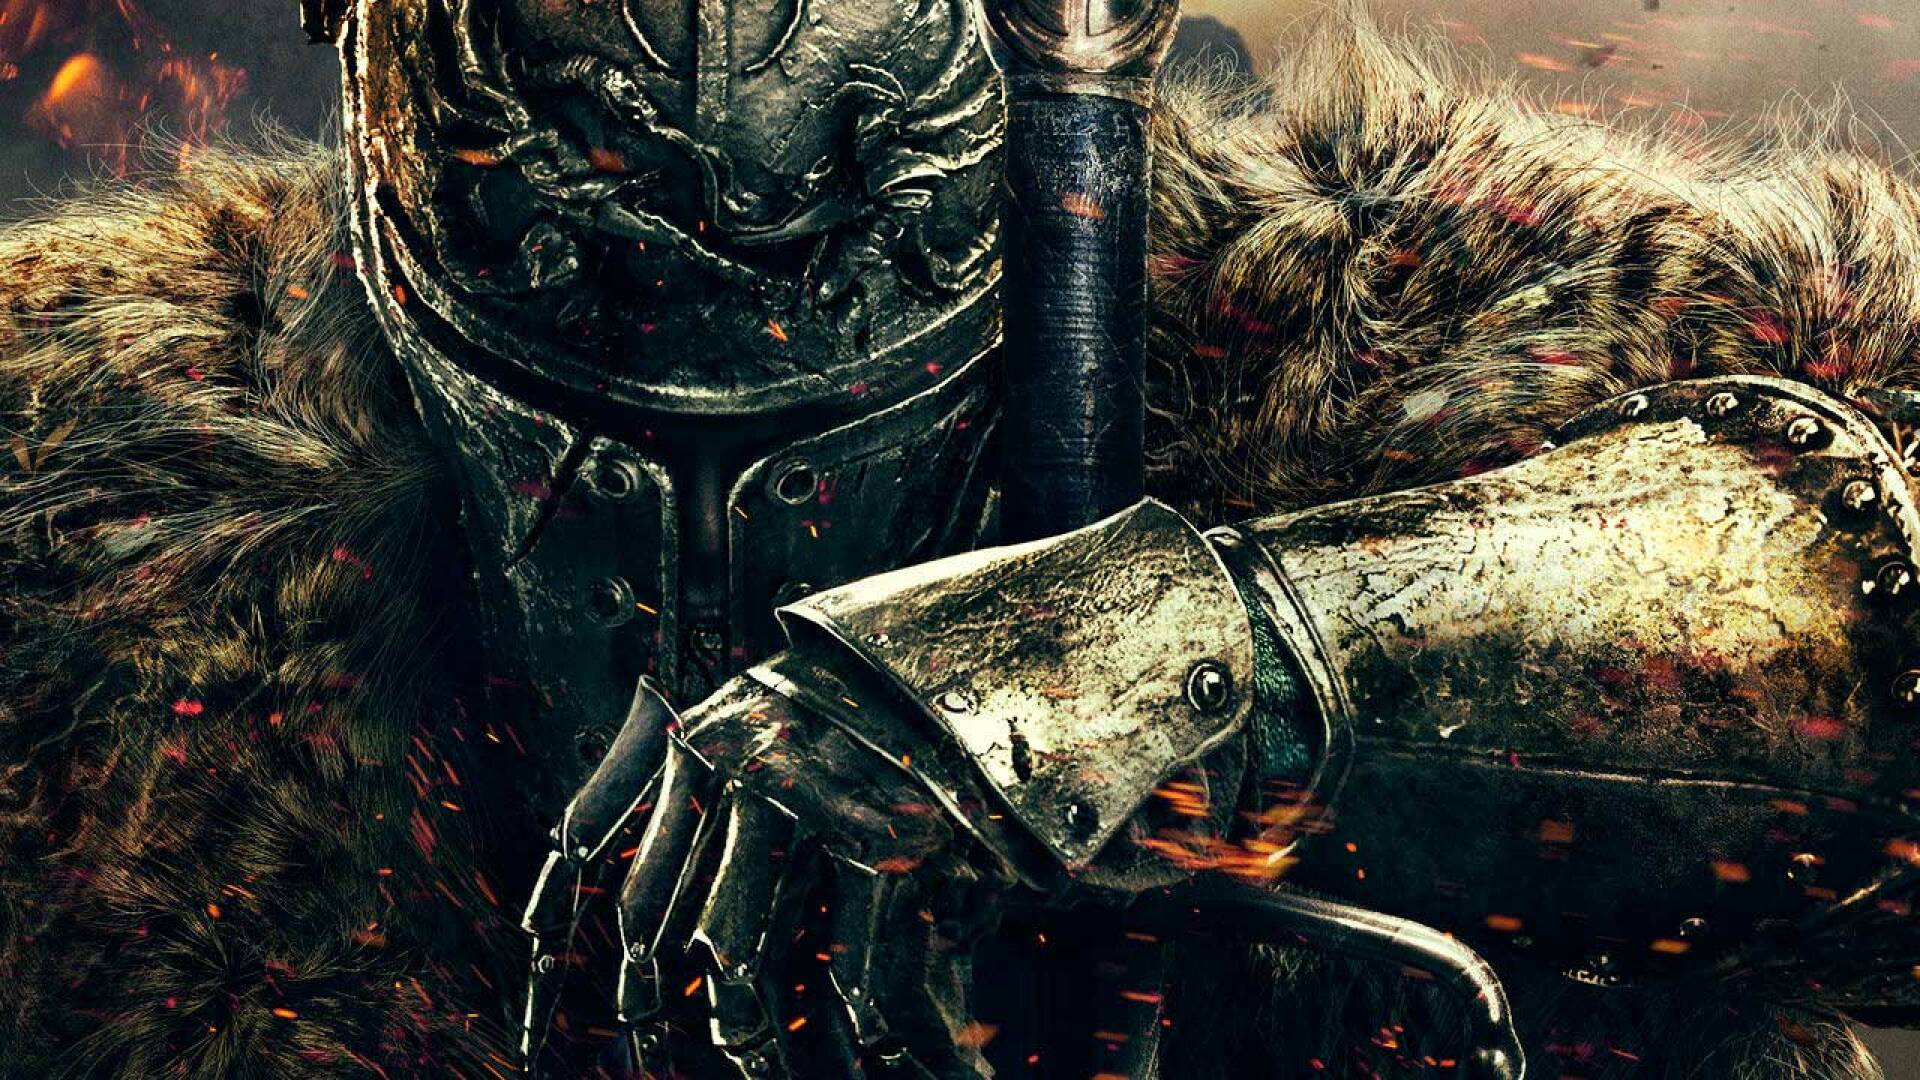 Dark Souls III, with this mod you can become one of the bosses of the game